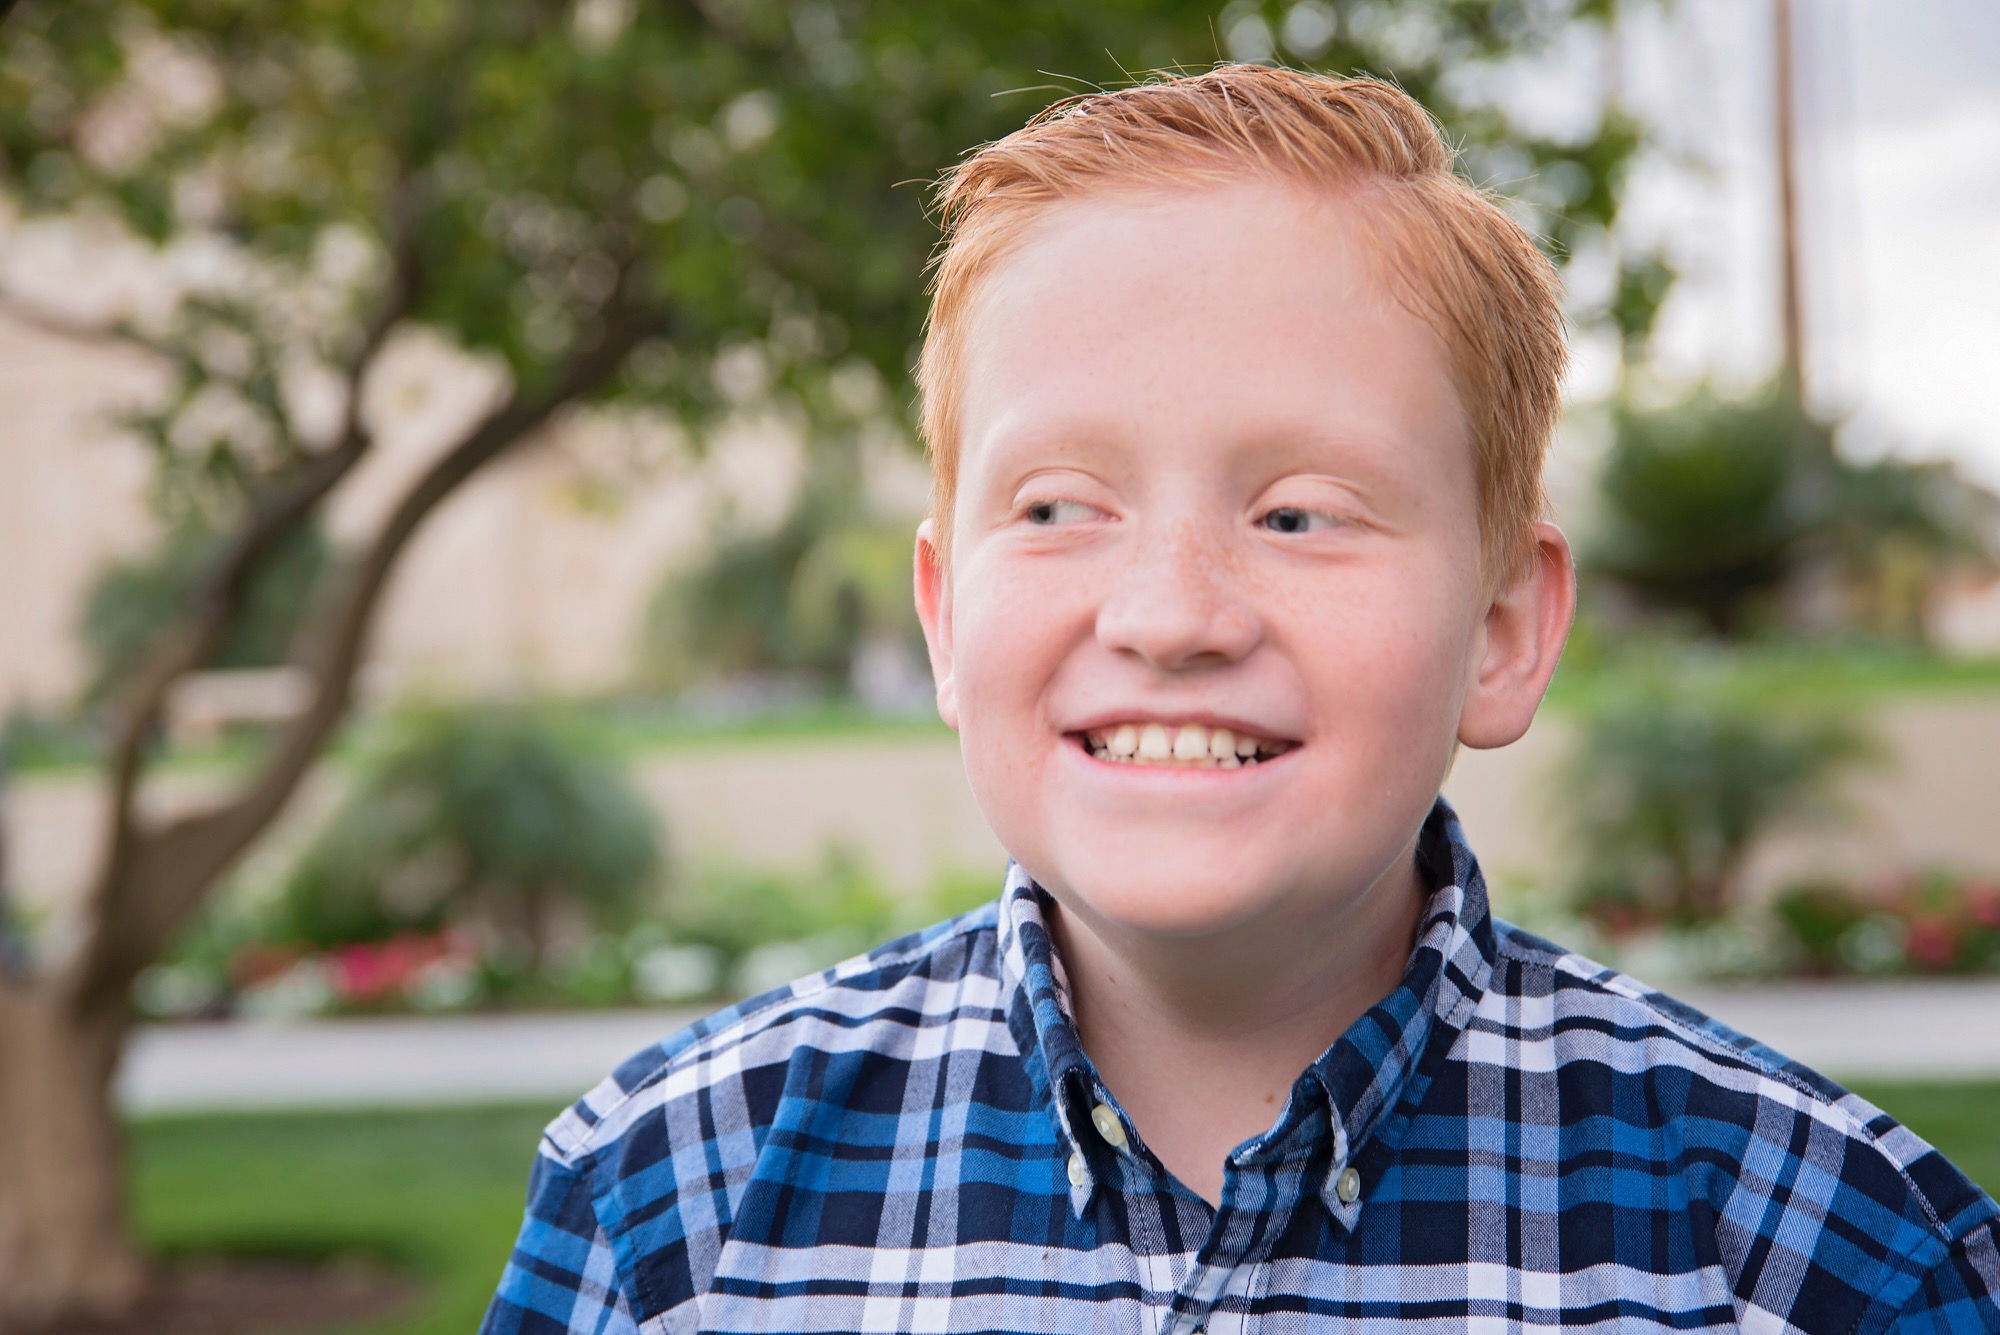 A boy preparing for his own funeral was miraculously healed